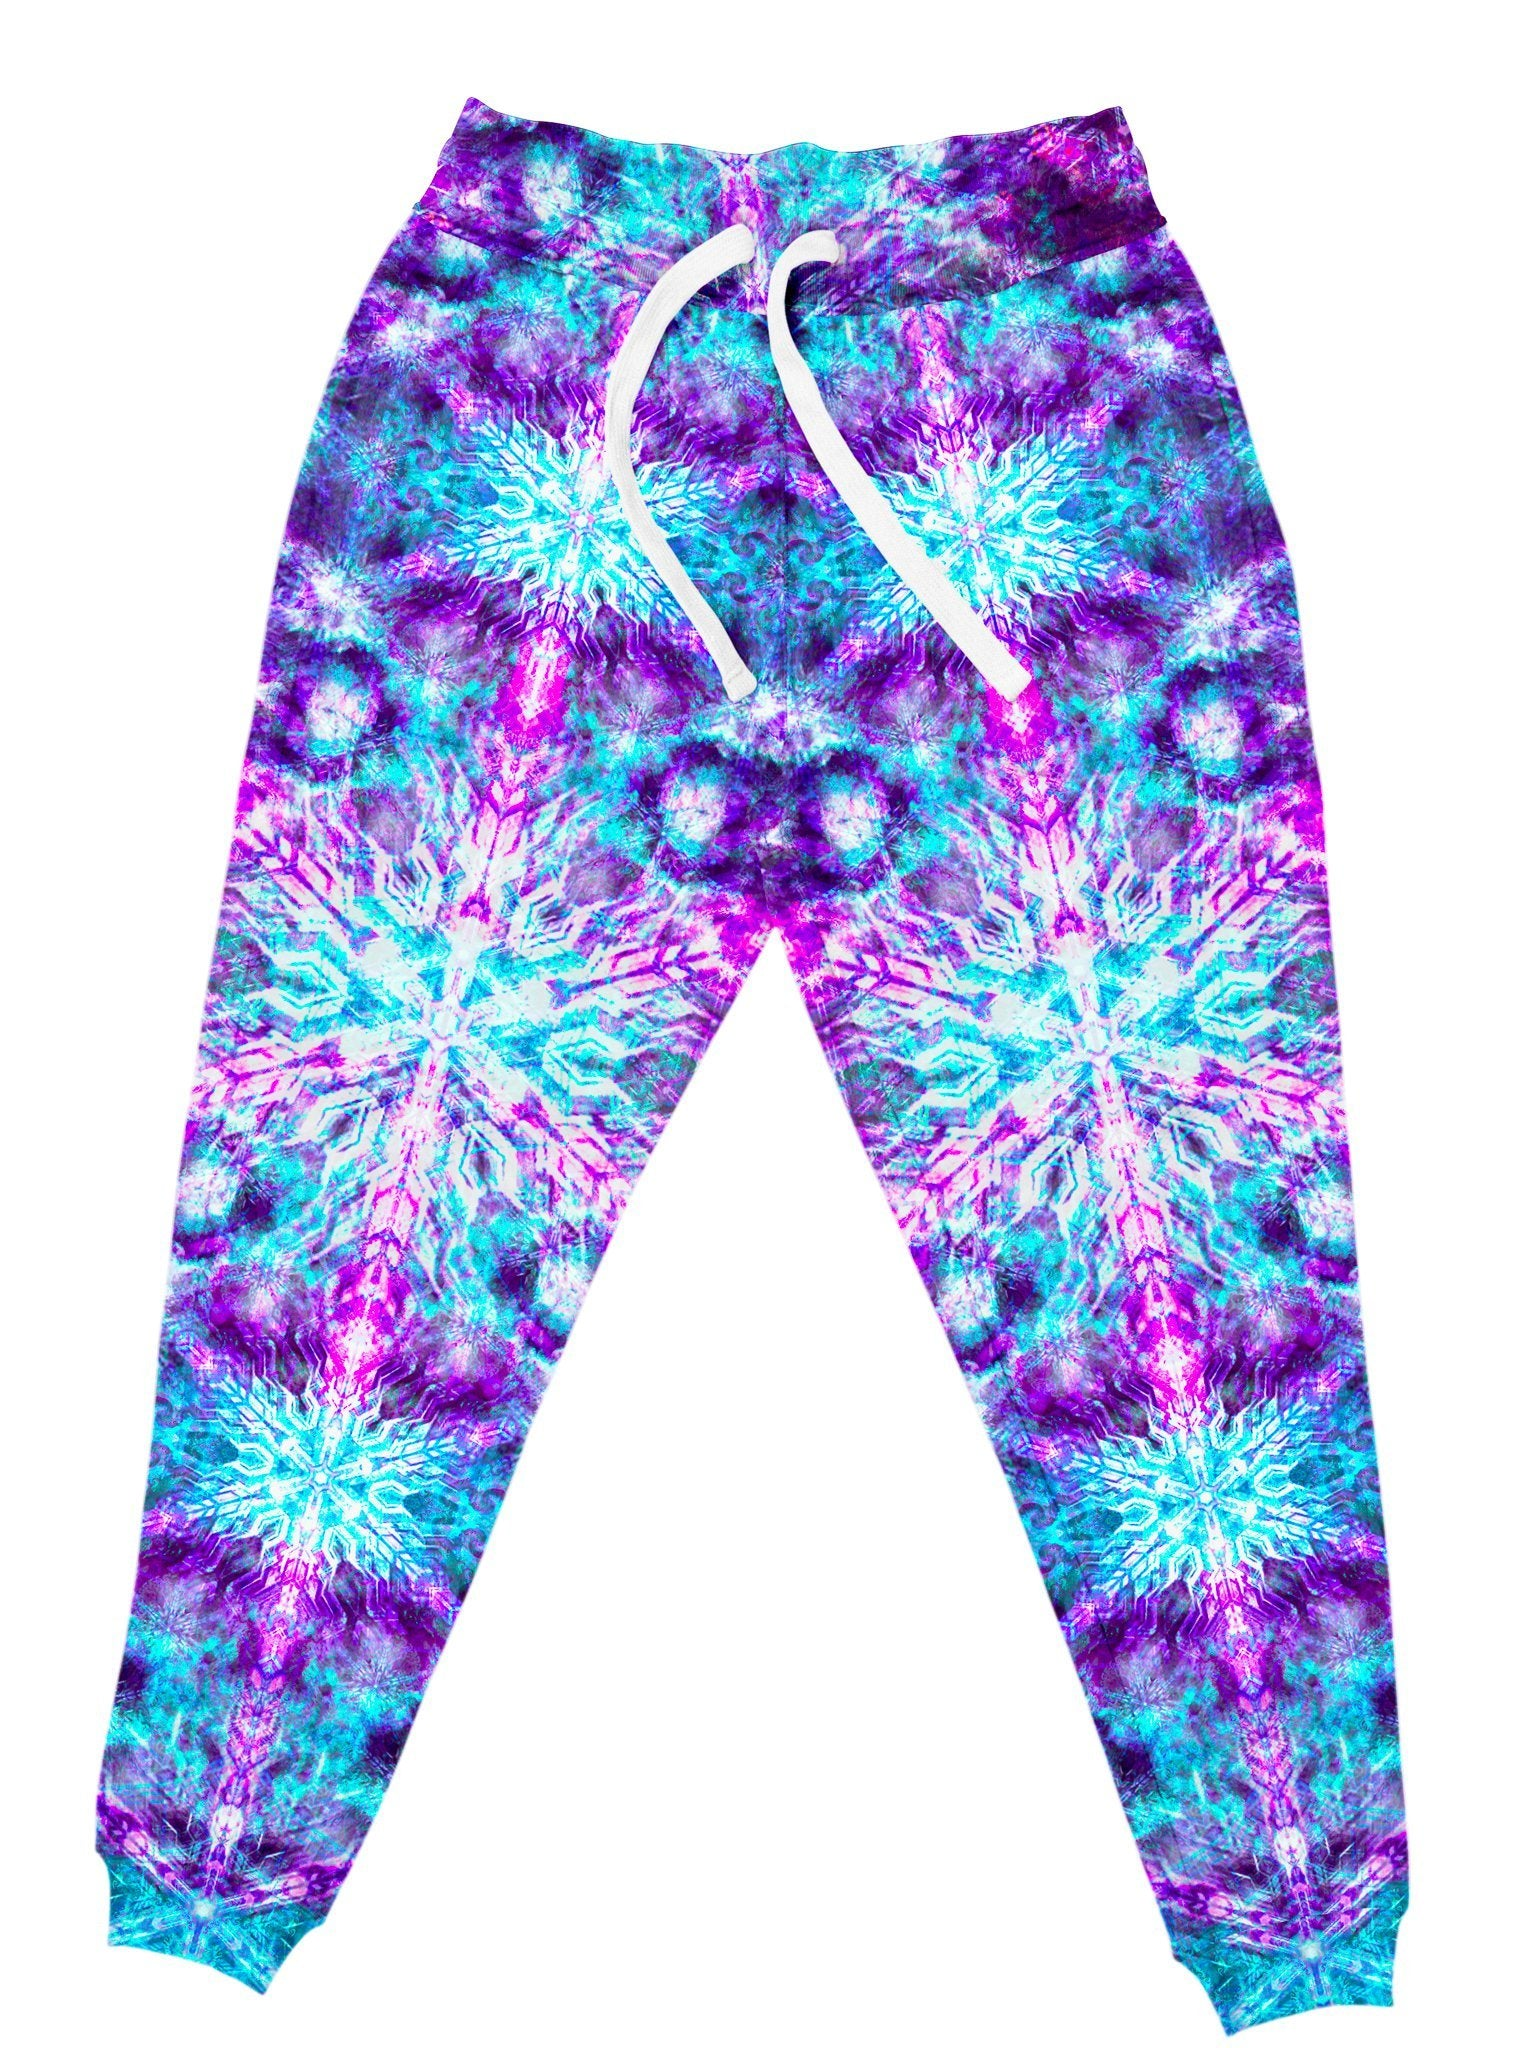 Mindfield Unisex Joggers Jogger Pant Electro Threads